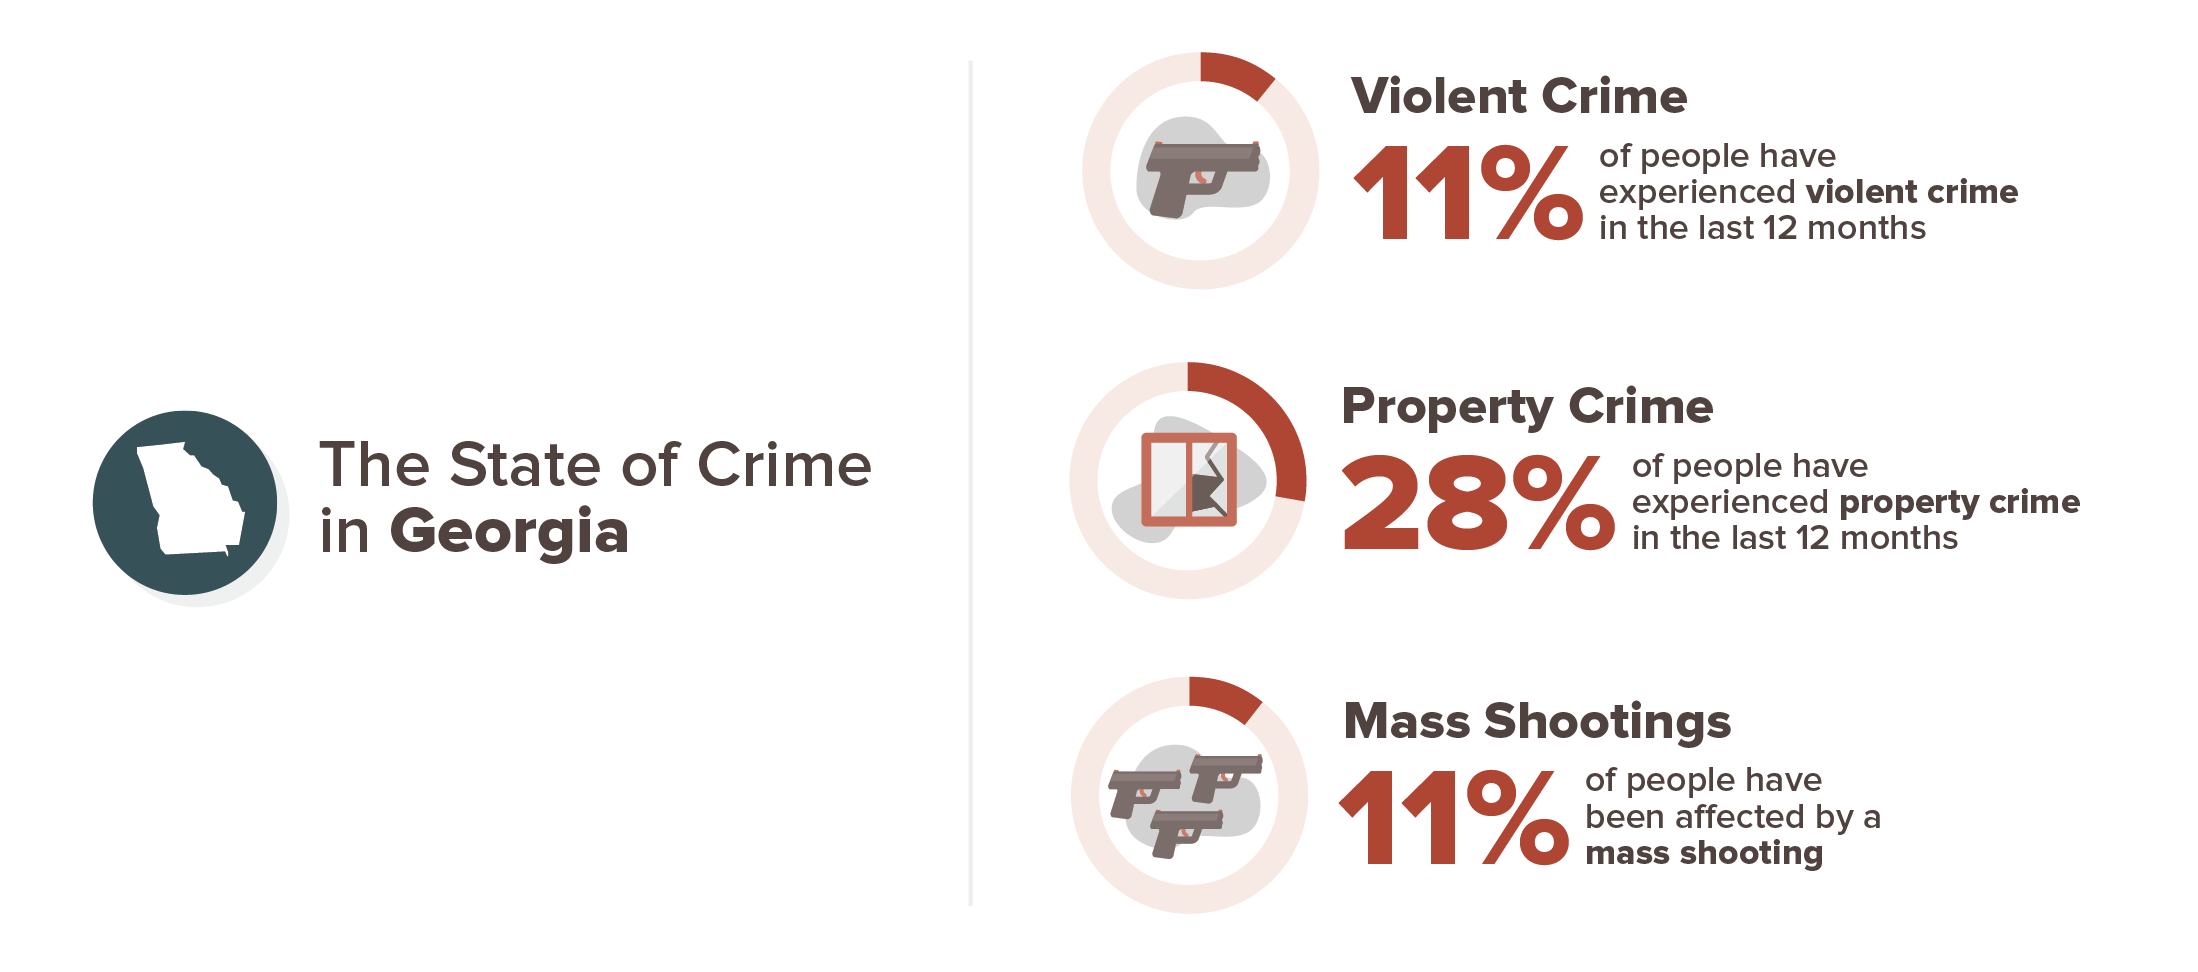 Georgia crime experience infographic; 11% violent crime, 28% property crime, 11% mass shooting